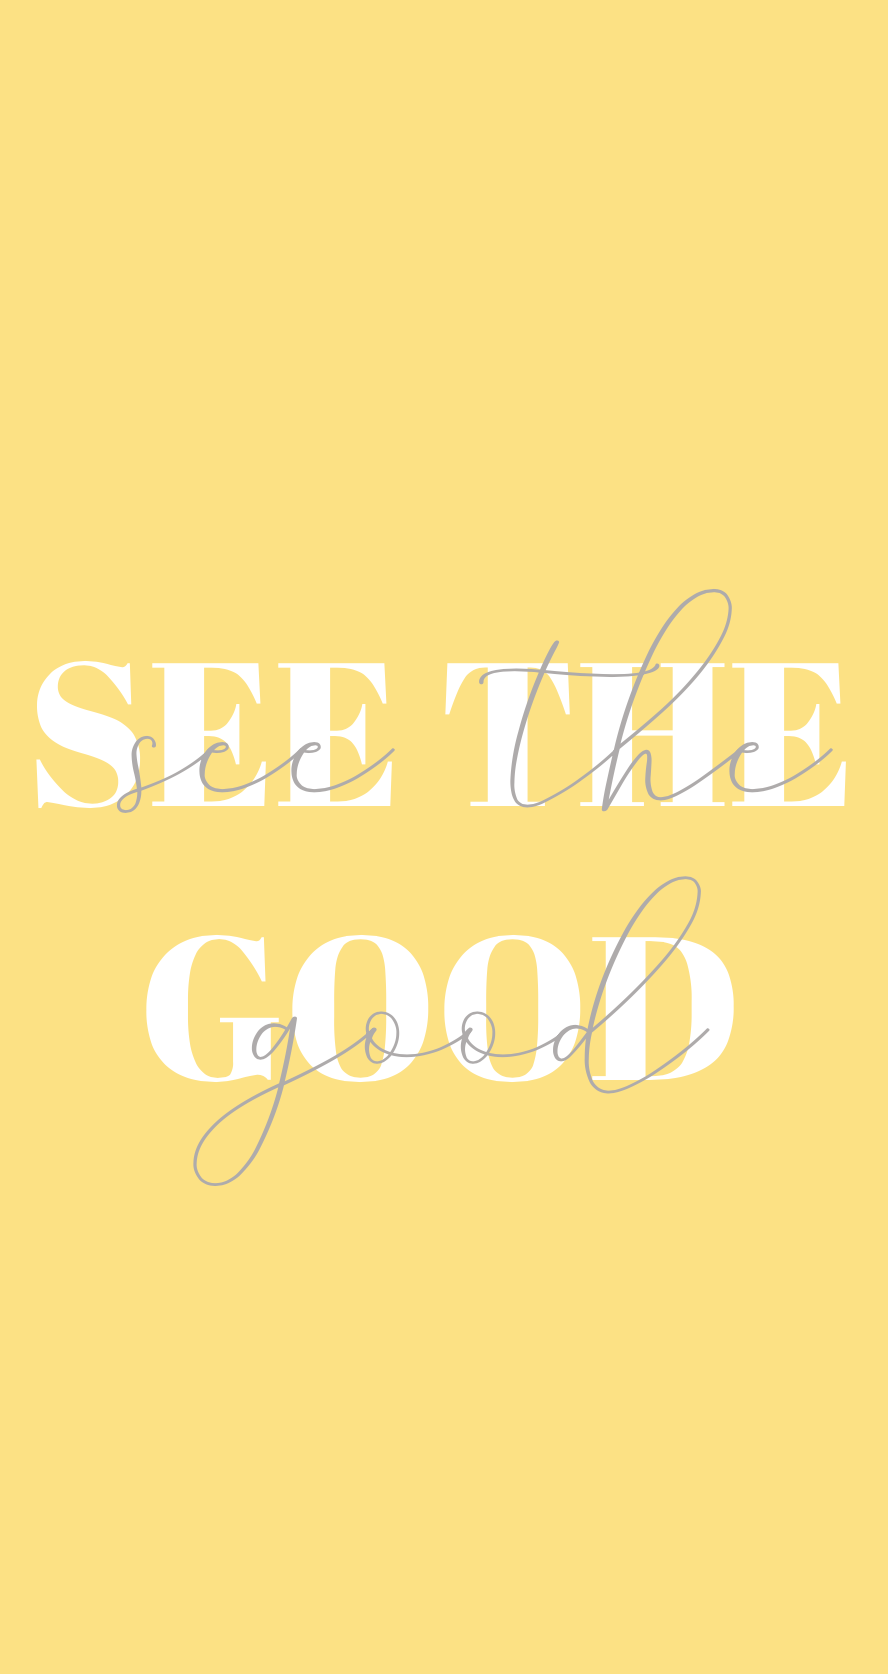 See The Good Yellow Quote Wallpaper Iphone Background Iphone Wallpaper Yellow Background Yellow Quotes Iphone Background Quote Iphone Wallpaper Quotes Love